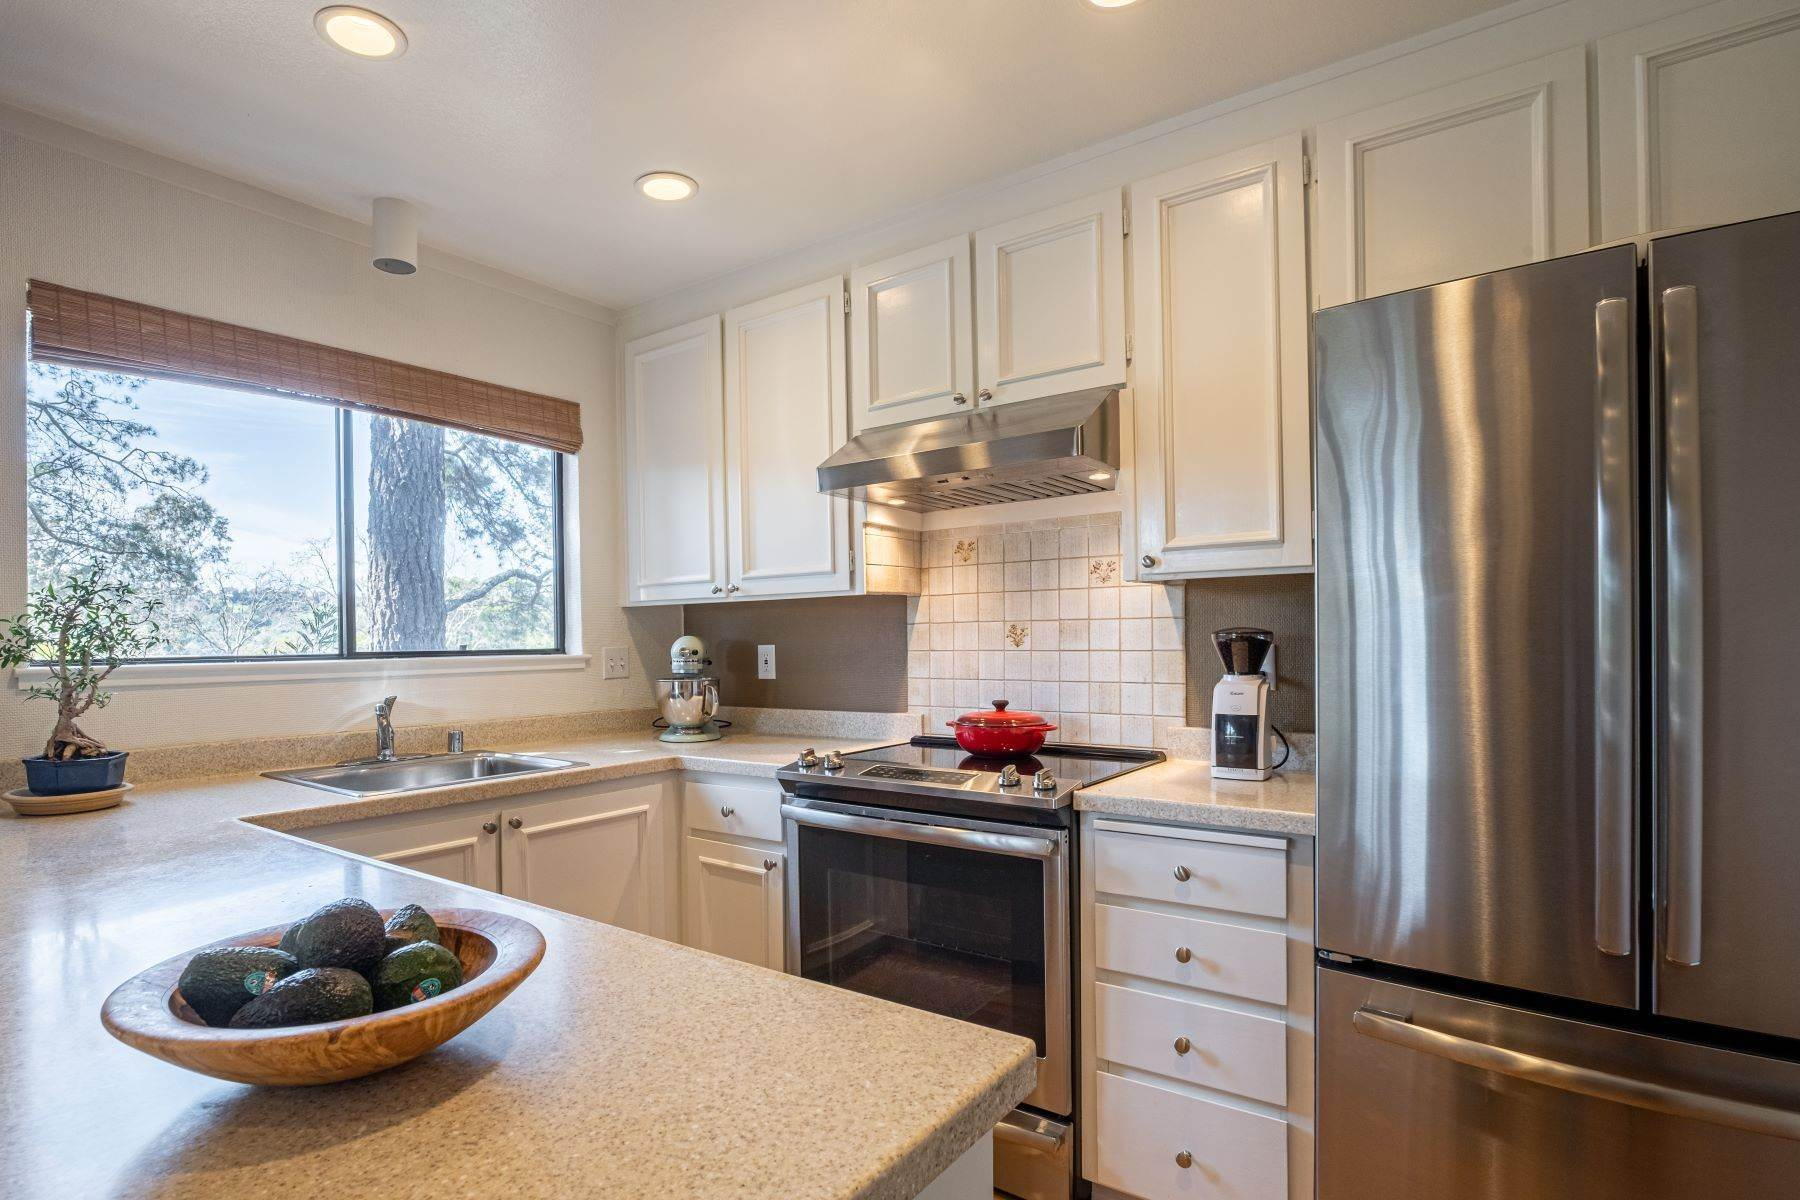 10. Condominiums for Sale at Luxury Townhome with Elevator 130 El Condor Court San Rafael, California 94903 United States